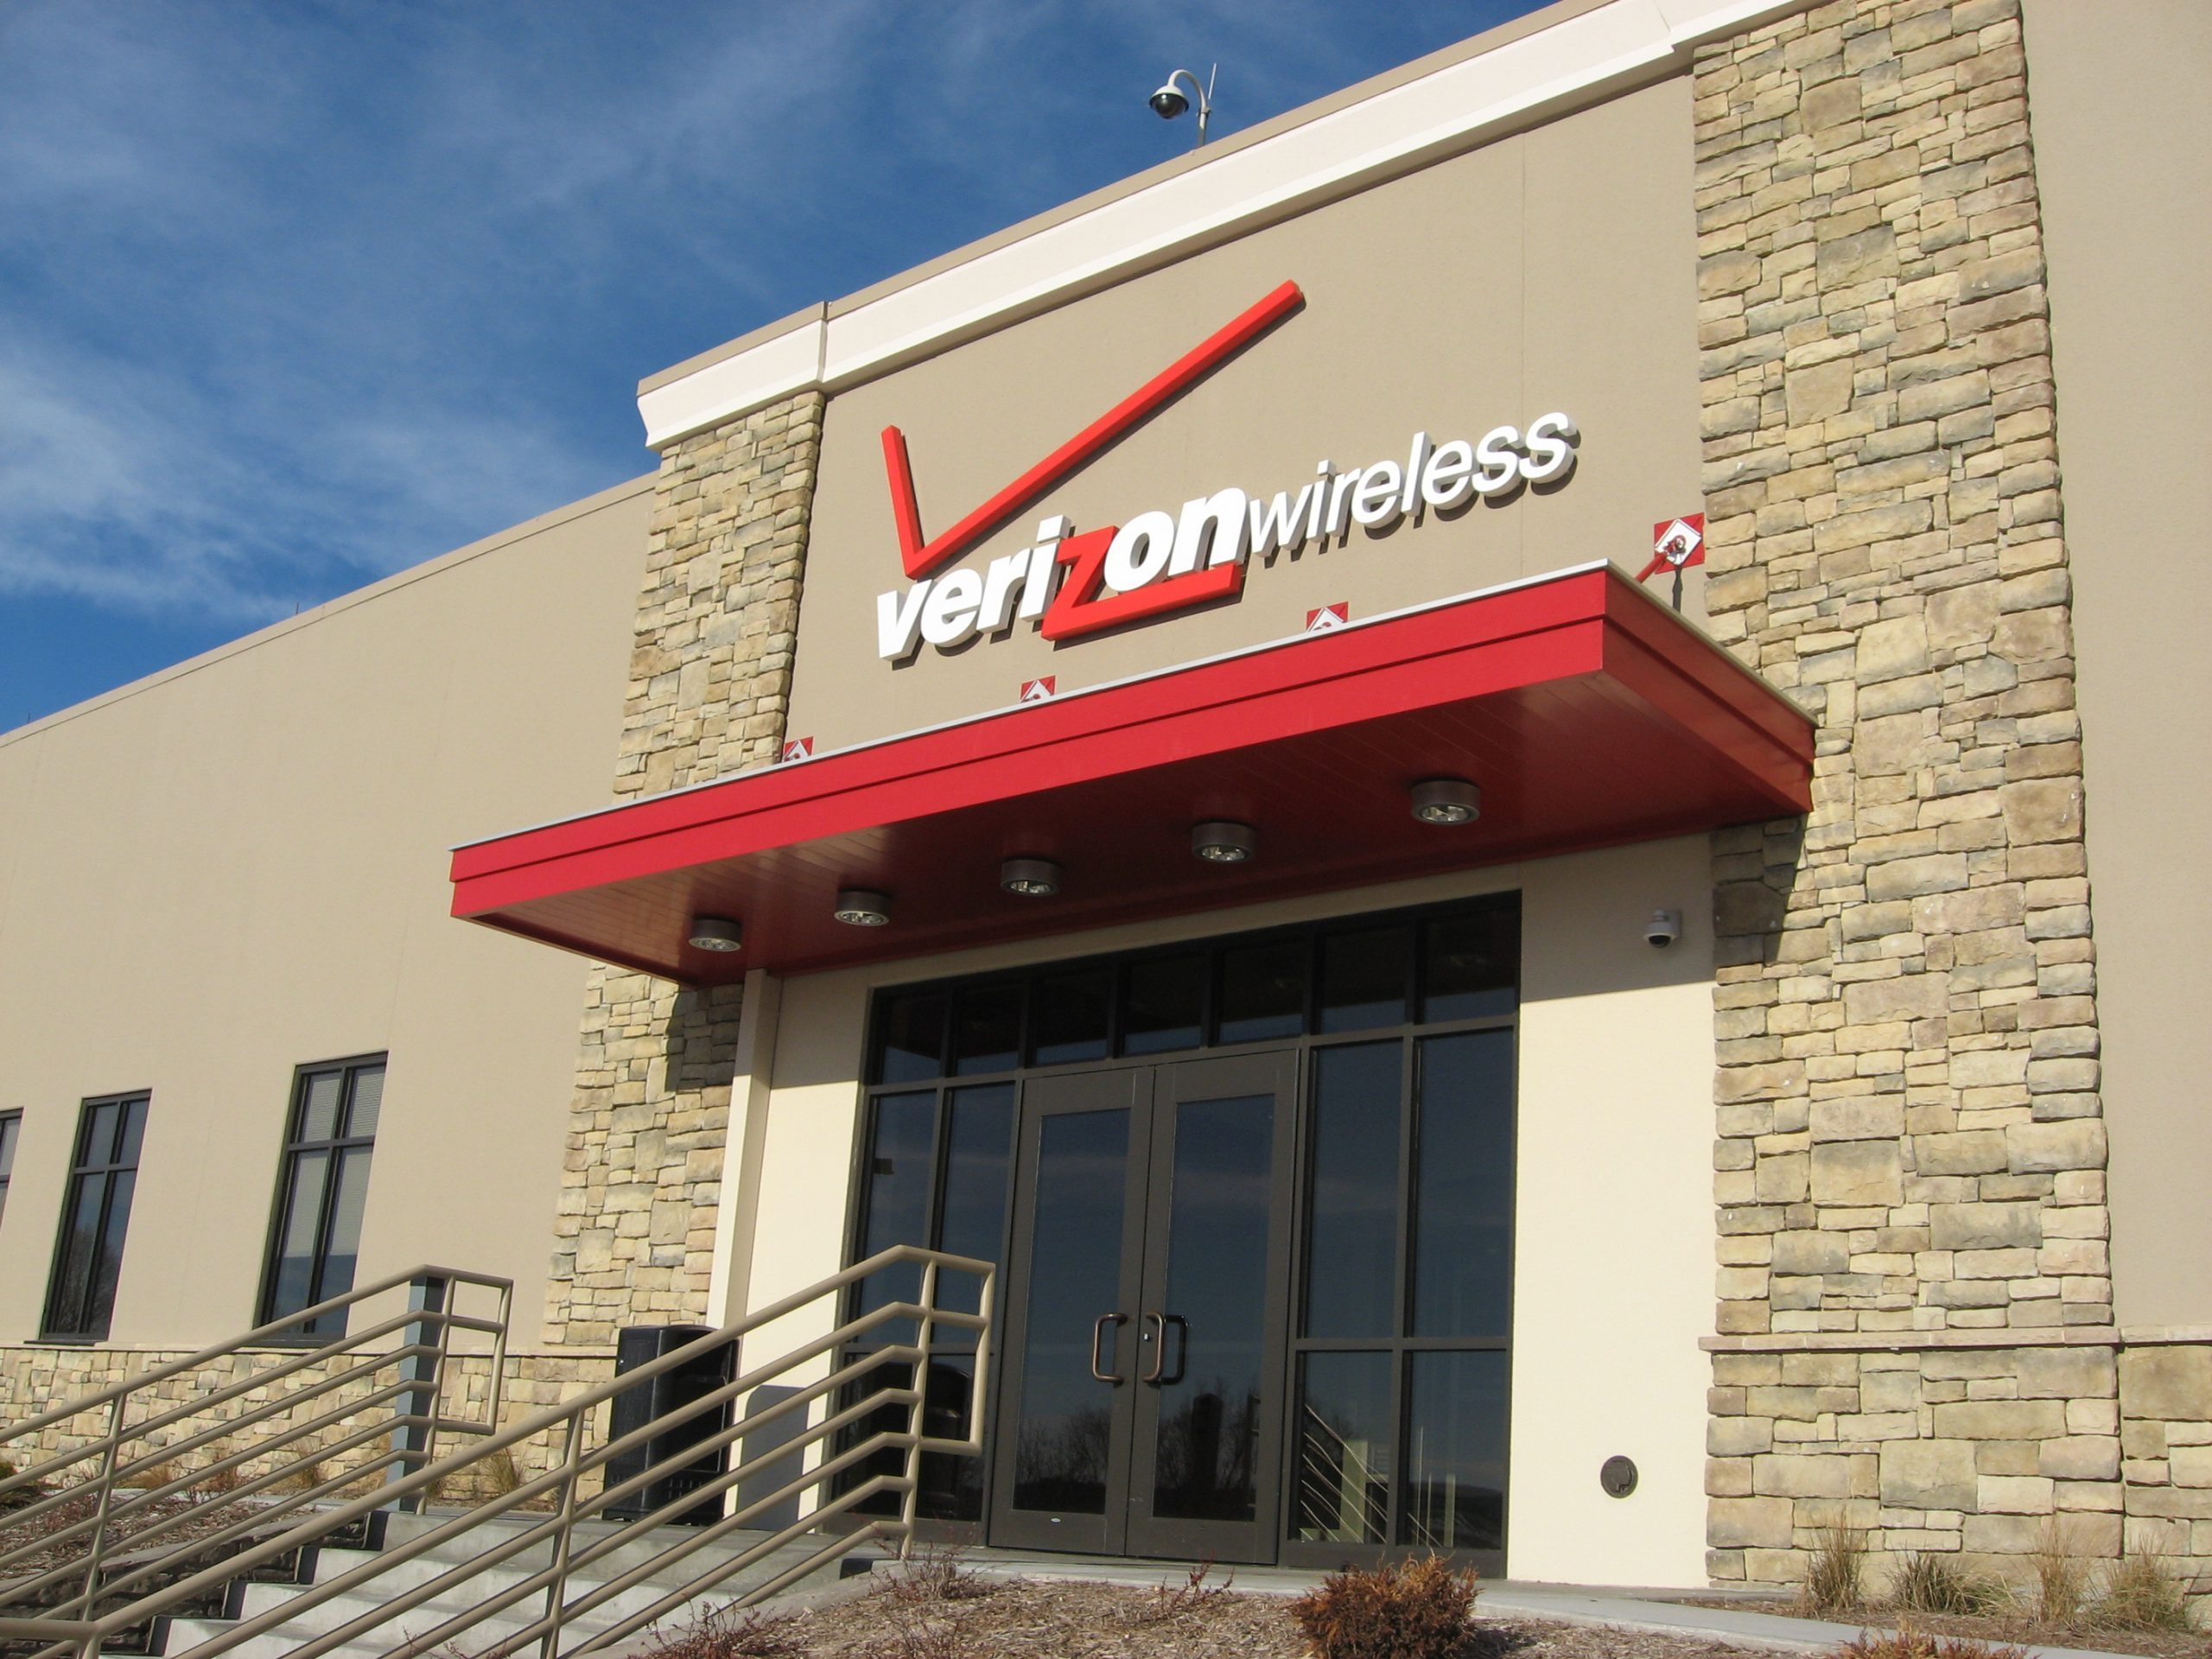 Aluminum-Architectural-Canopy-Awning-Verizon